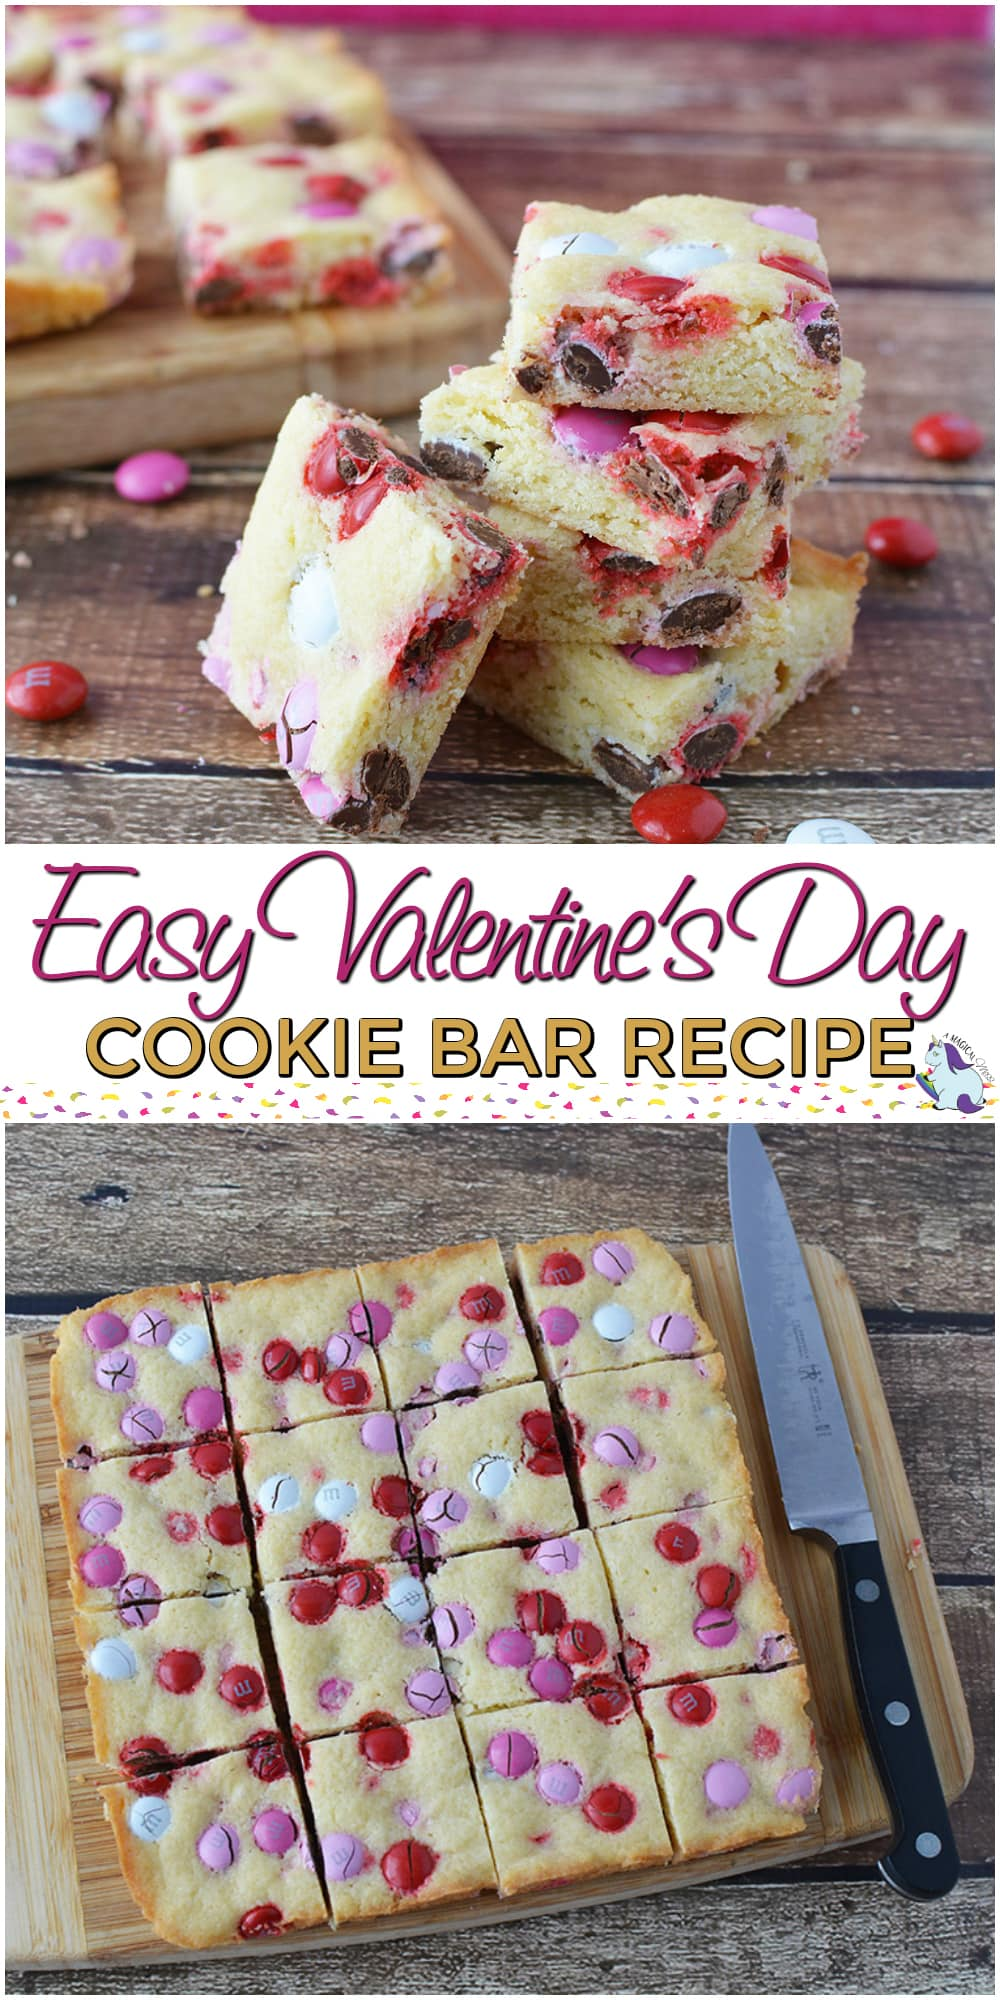 Easy Cookie Bar Recipe that we Love for Valentine's Day #cookies #recipe #valentinesday #easyrecipe #baking